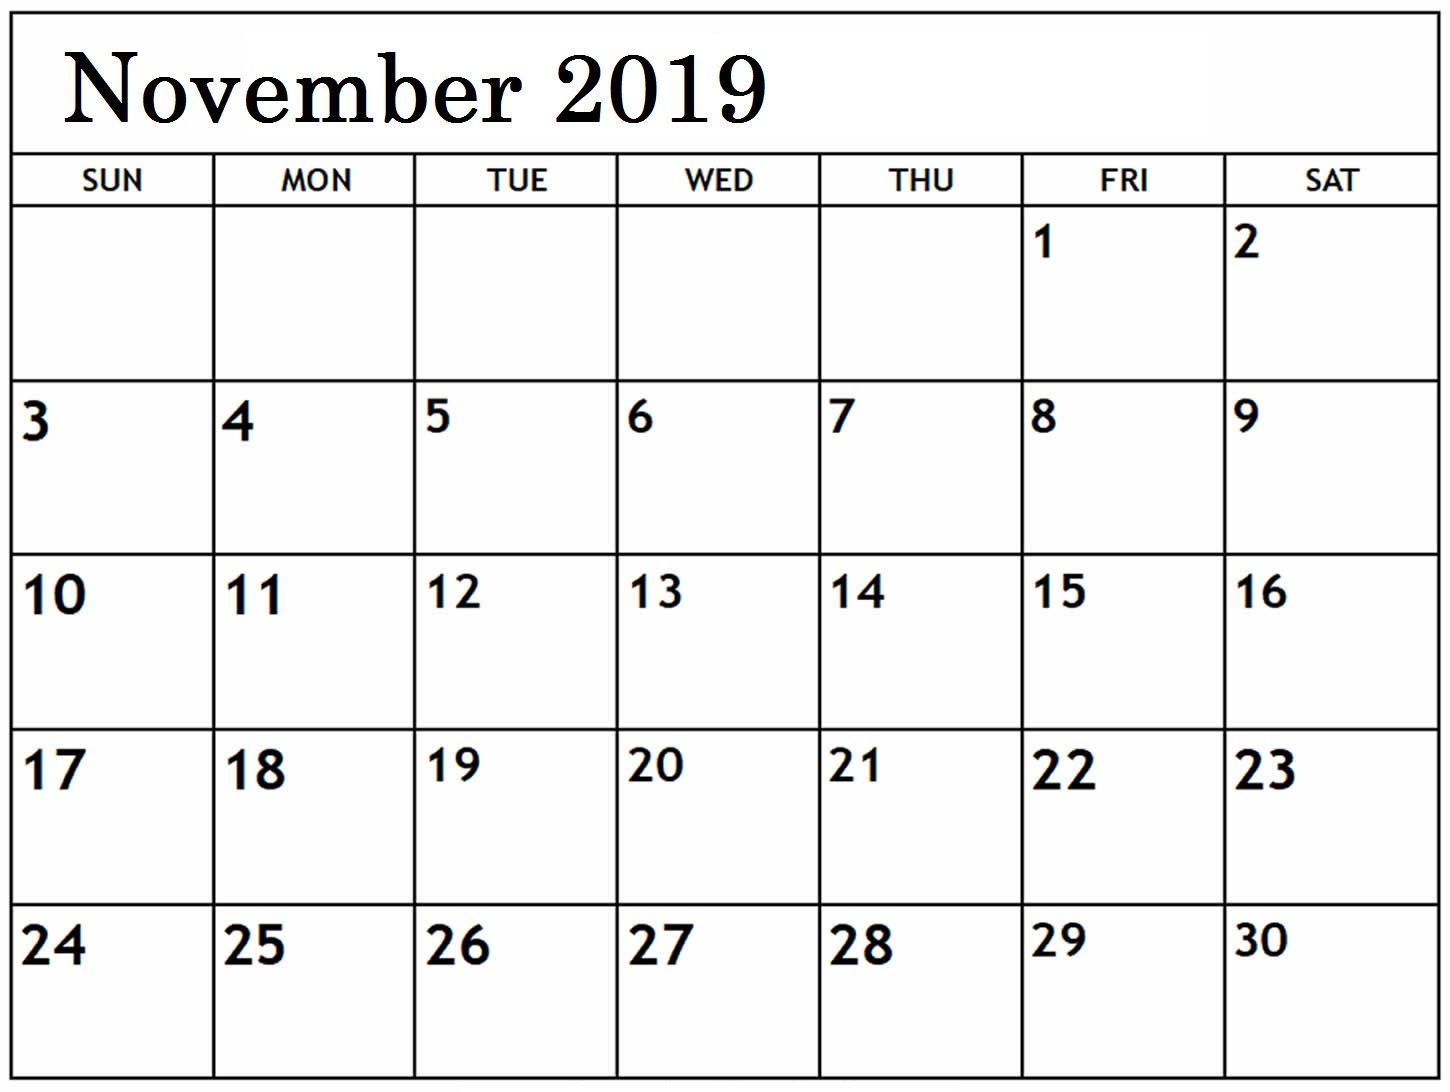 November 2019 Blank Calendar Editable | Printable Calendar intended for January 2020 Waterproof Calendar